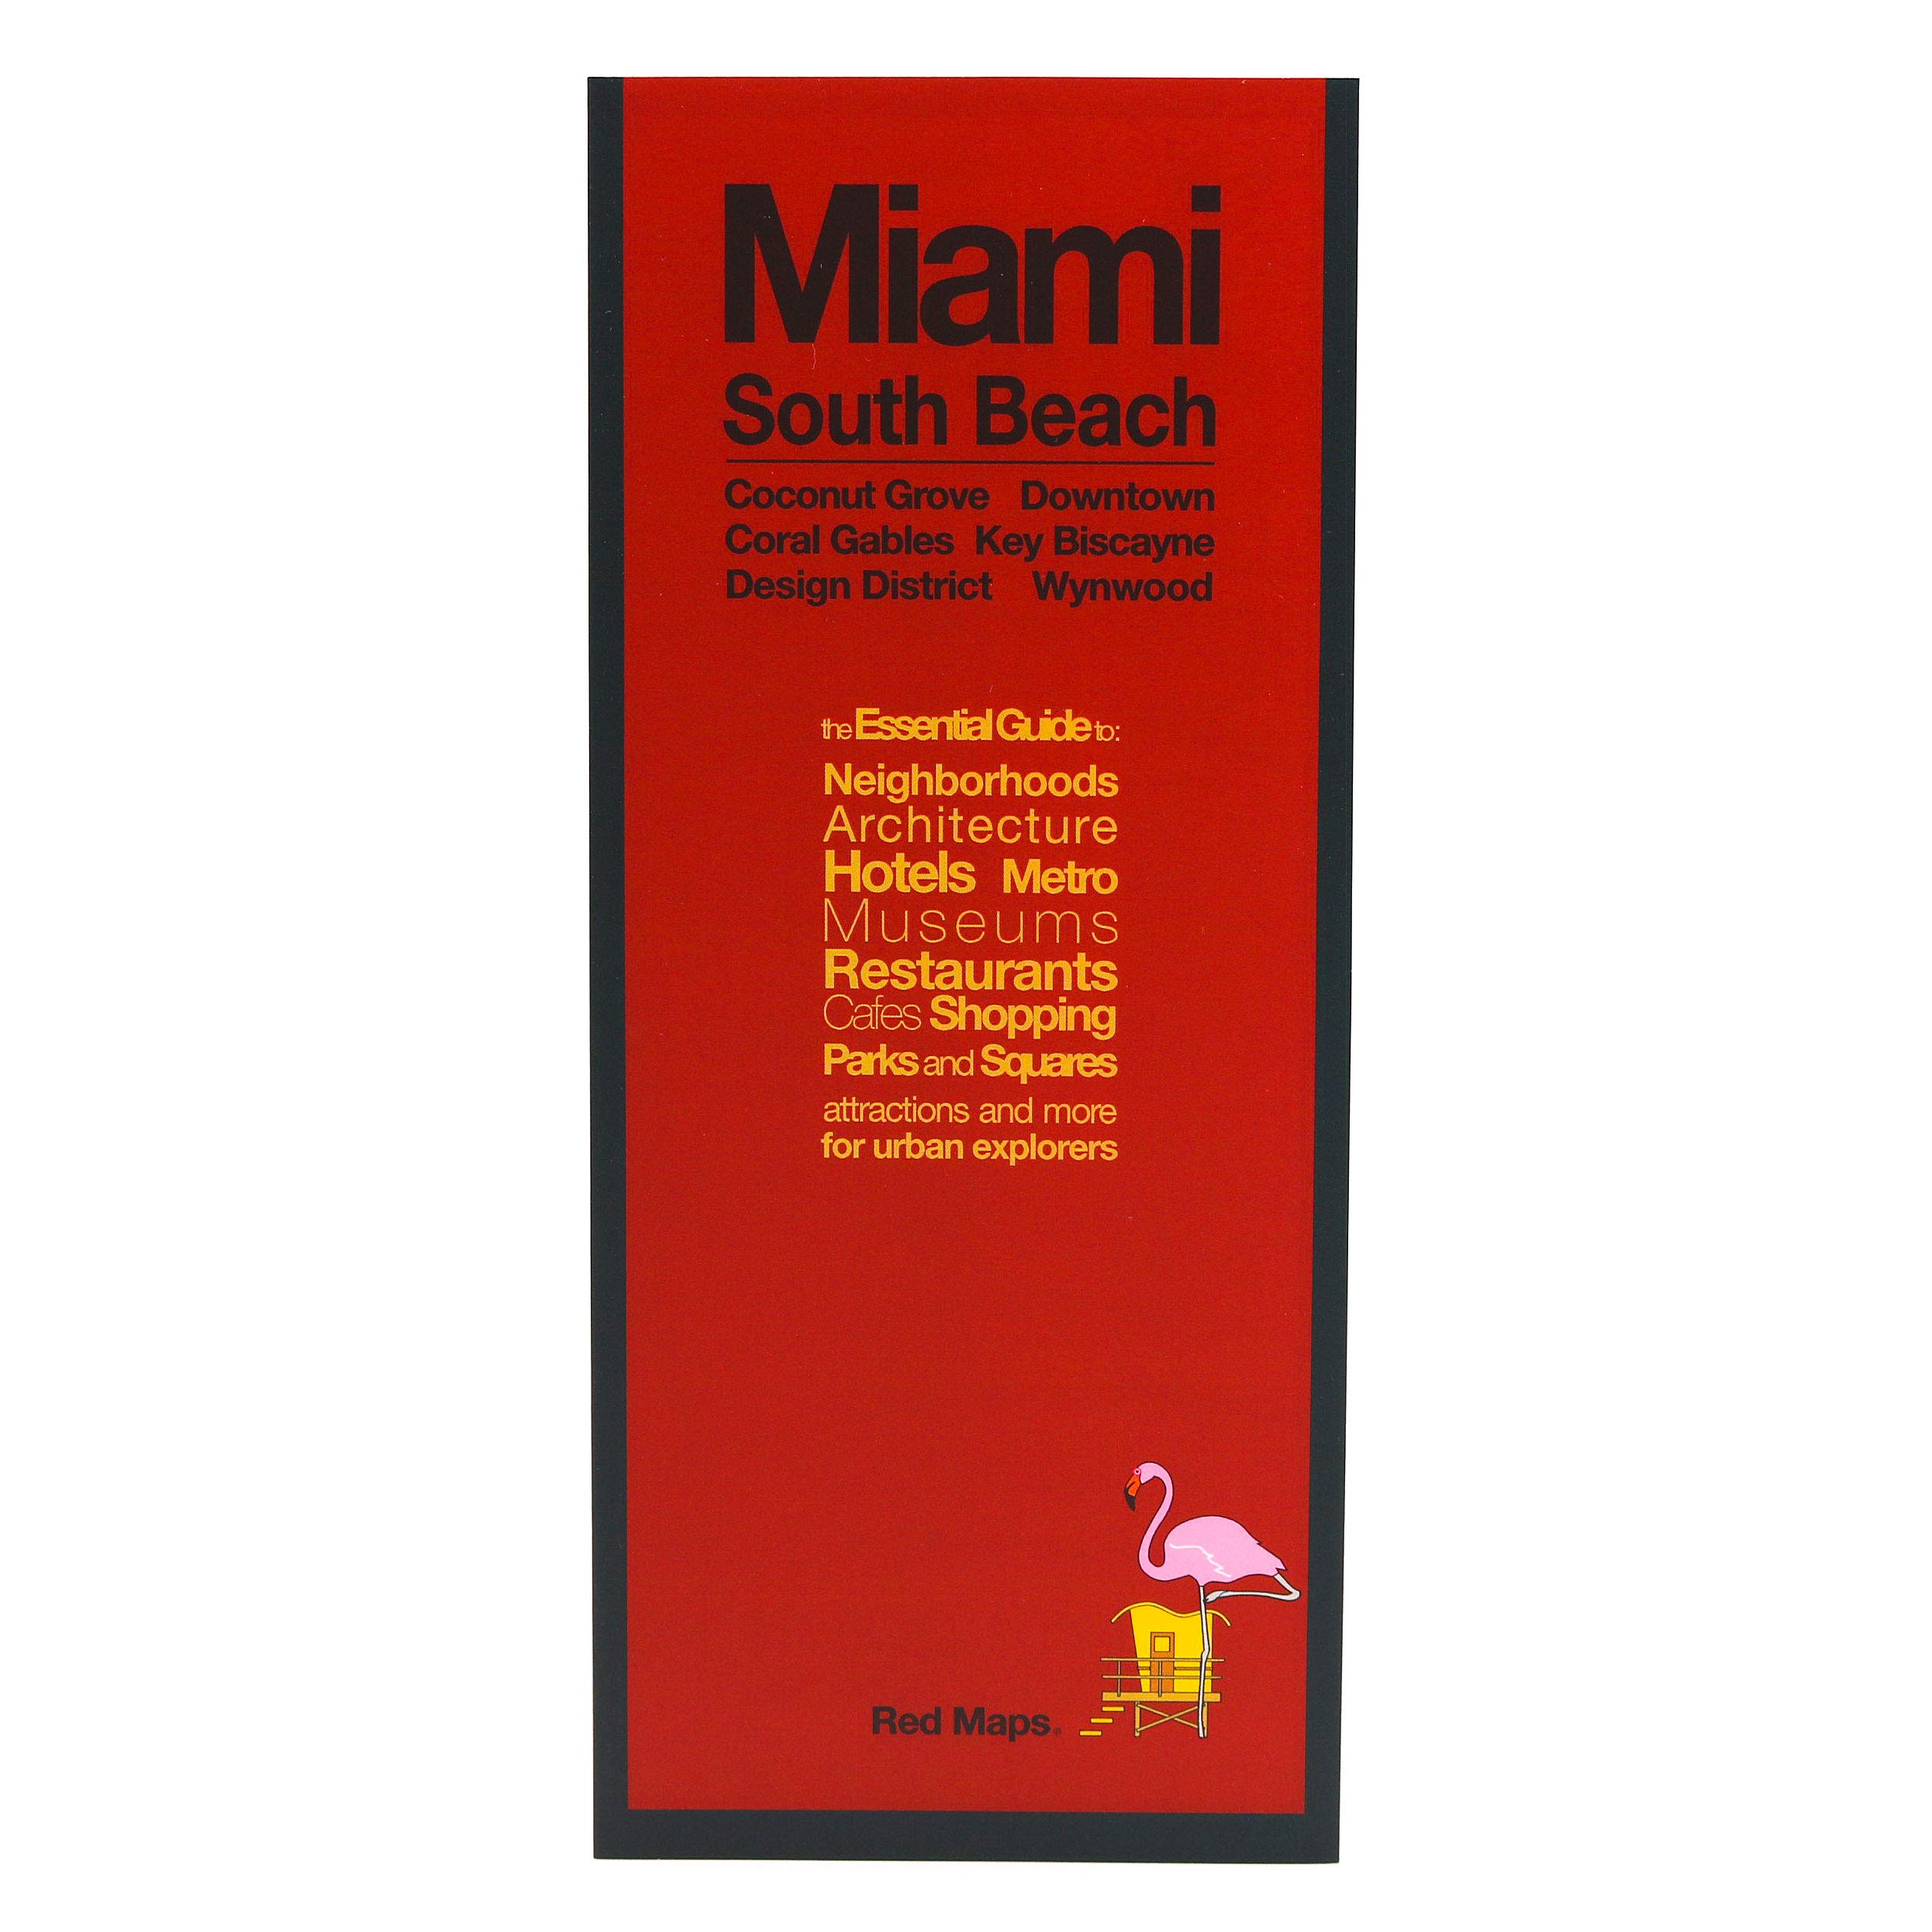 Red Maps MIAMI & SOUTH BEACH Street Map and City Guide: Red ... South Beach Hotels Map on sagamore hotel map, kaanapali beach hotel map, michigan avenue hotel map, jacksonville hotel map, ocean drive hotel map, corvallis hotel map, geneva hotel map, miami hotel map, linq hotel map, oceanside hotel map, hotels seattle washington map, arlington hotel map, klamath falls hotel map, azul beach hotel map, salem hotel map, eugene hotel map, hood river hotel map, pensacola hotel map, florida hotel map, edgewater hotel map,